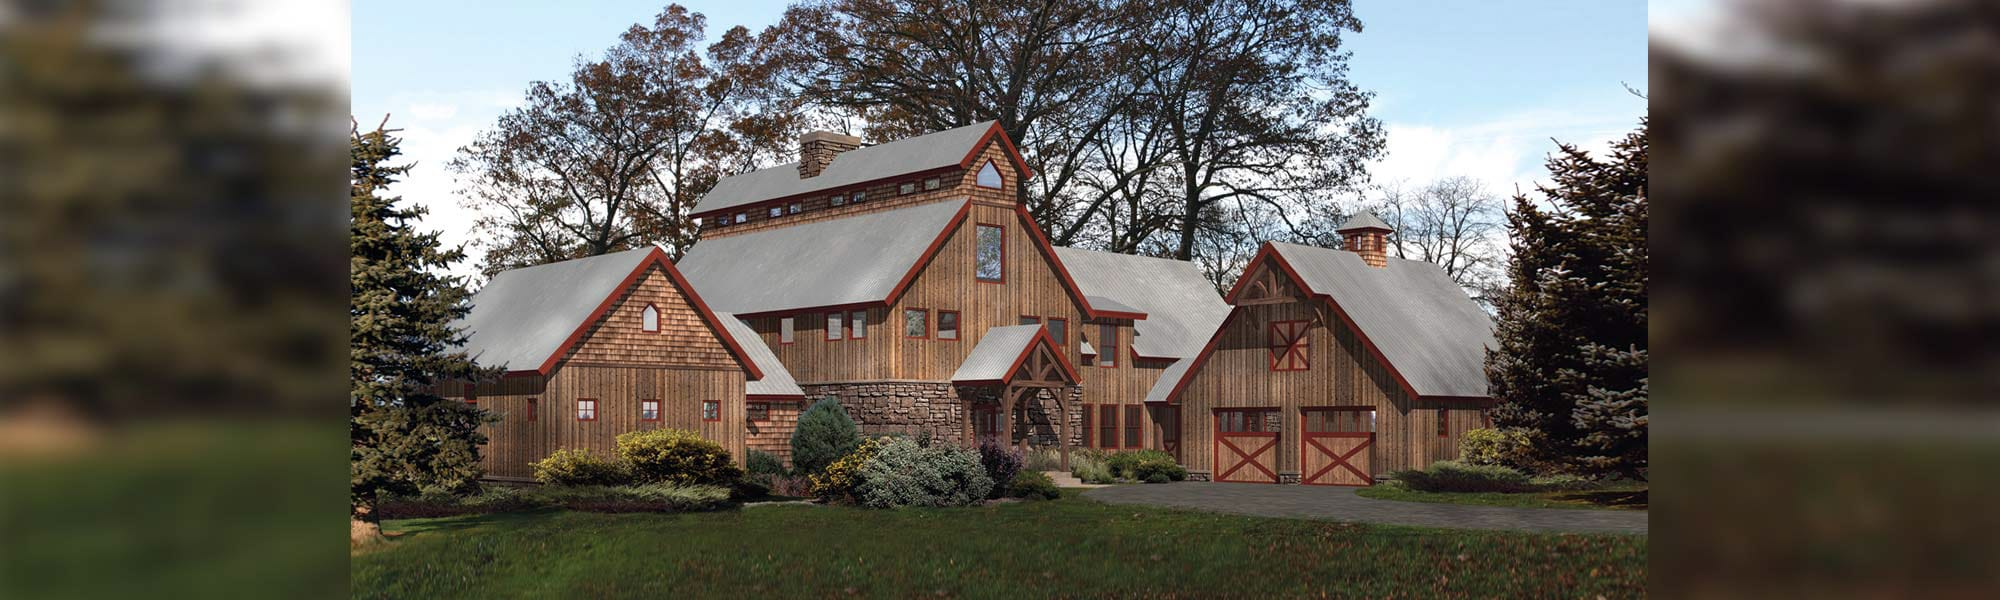 Lancaster timber barn home design